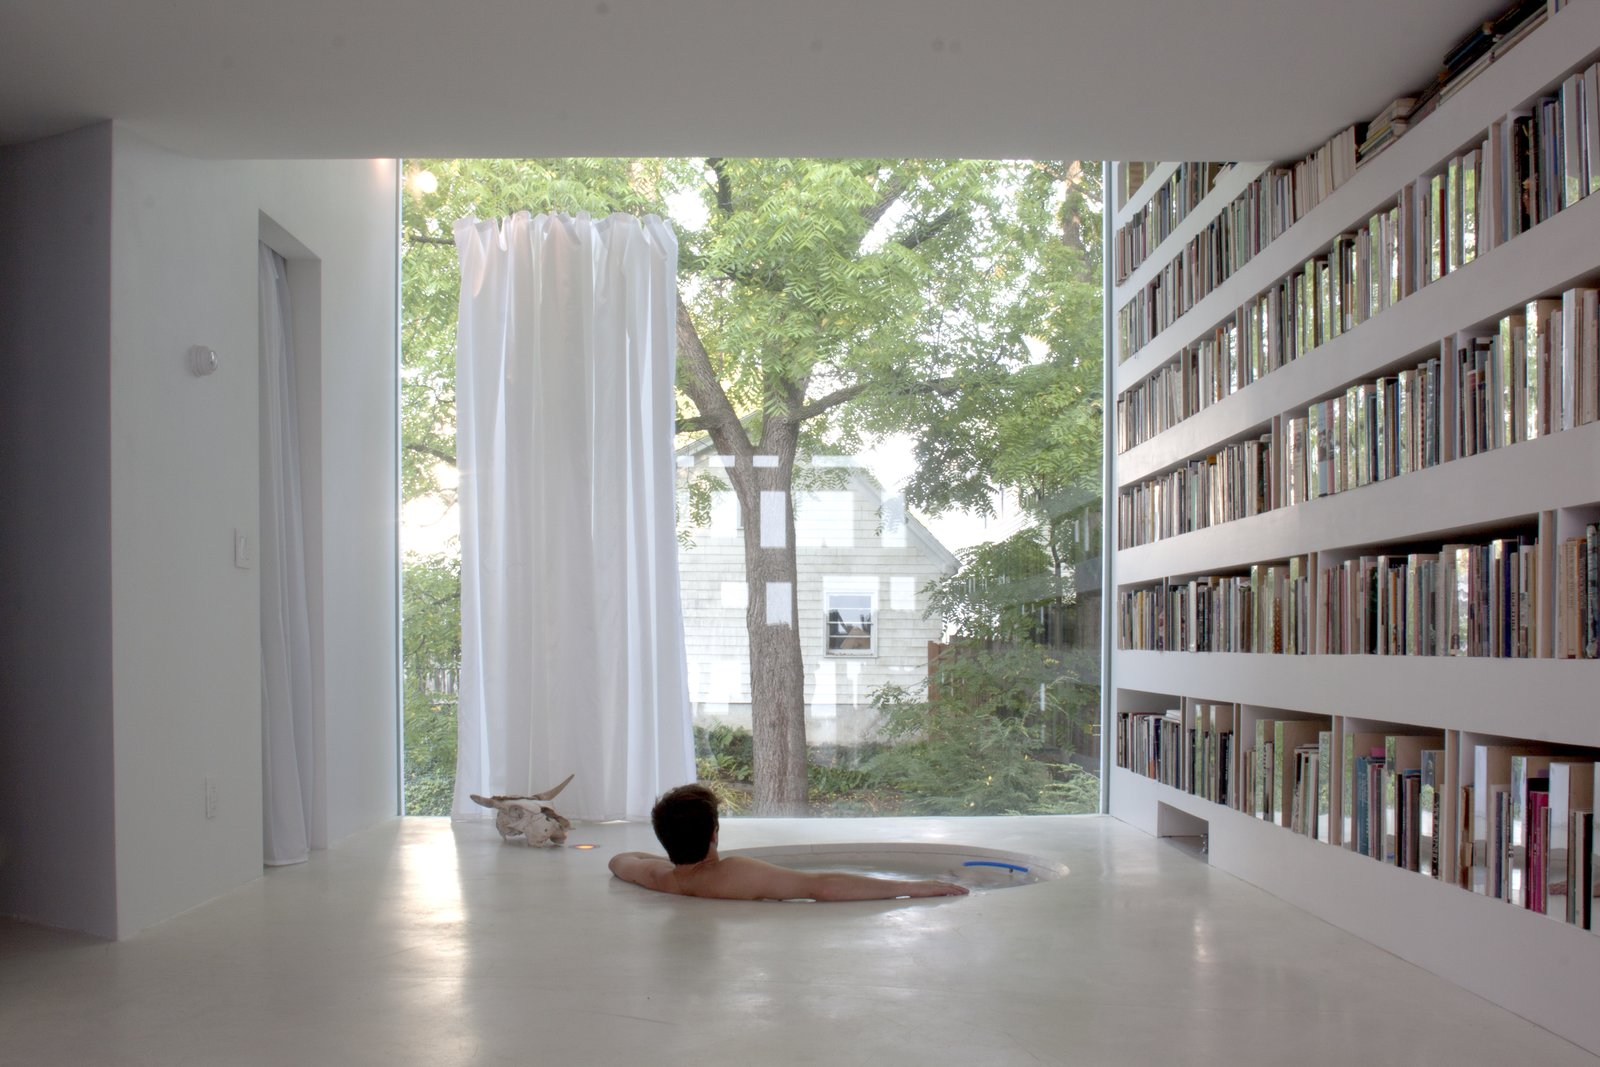 The studio's second floor serves as a library. The sunken bathtub offers interrupted sightlines across the space and out into the backyard. The tub, like the library's floor, is made of concrete. Tagged: Bath Room and Soaking Tub.  Read by DAVE MORIN from This Glowing Library Addition is Every Writer's Dream Escape